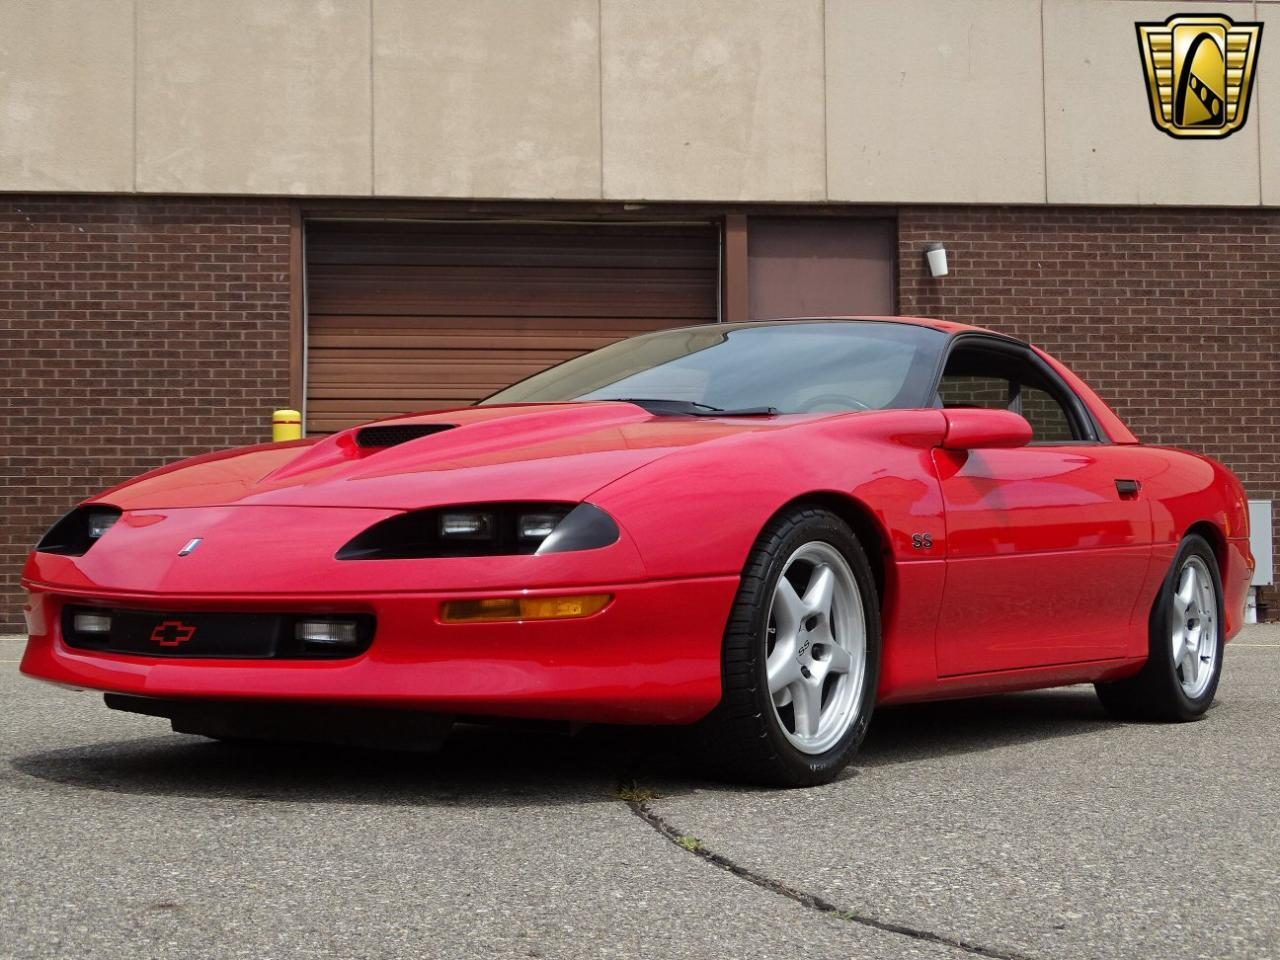 Large Picture of 1996 Chevrolet Camaro Offered by Gateway Classic Cars - Detroit - LDUP